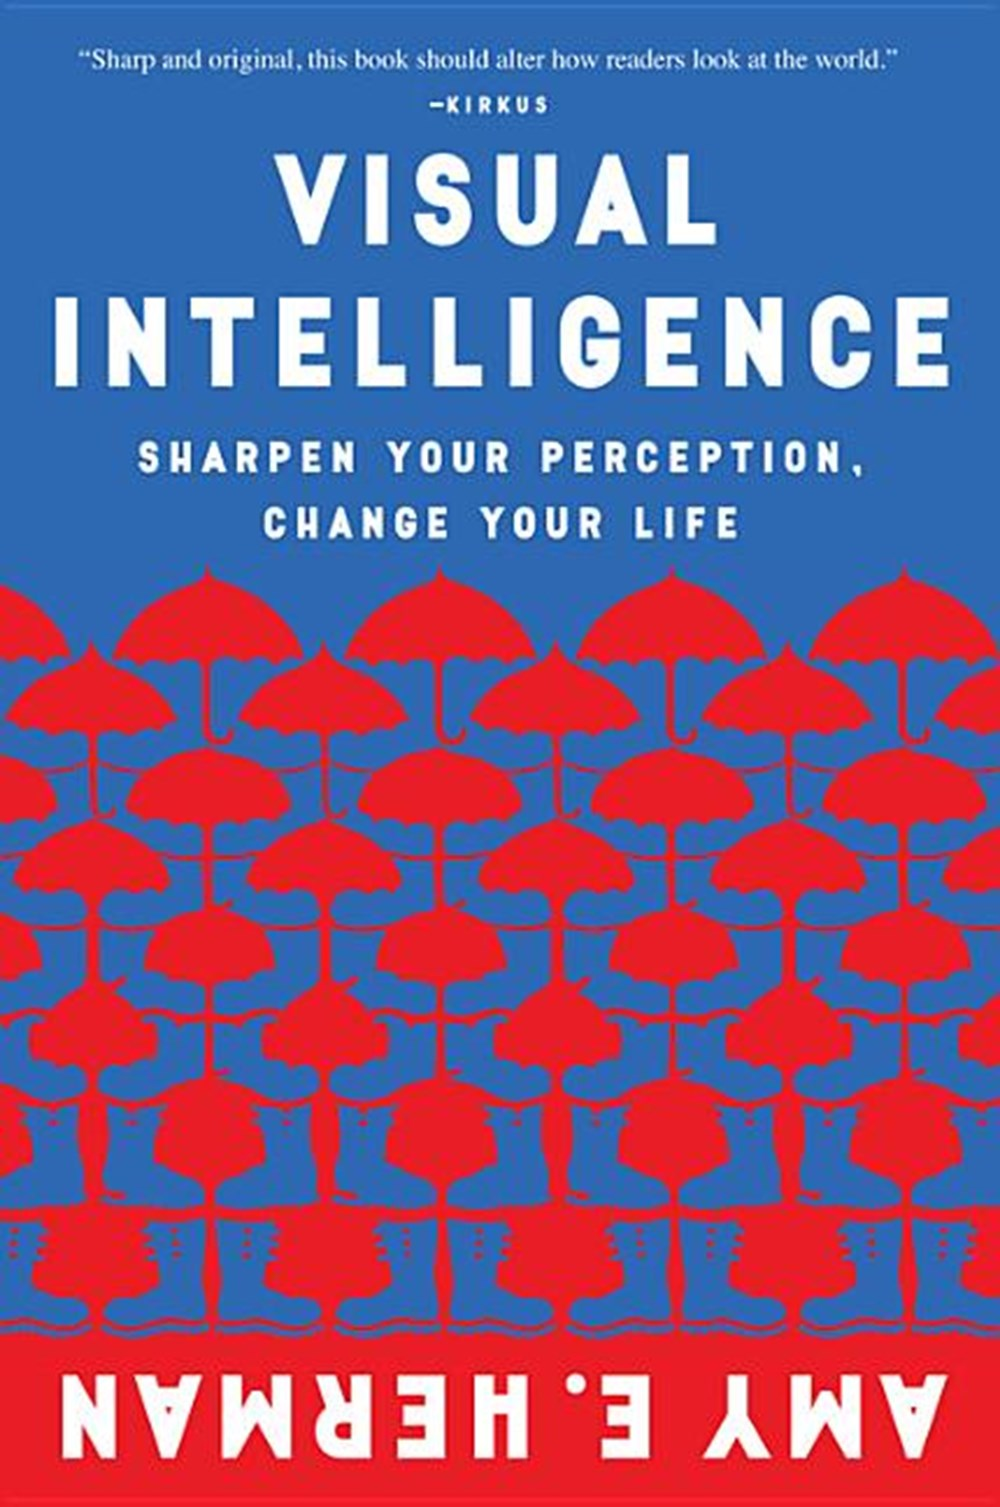 Visual Intelligence Sharpen Your Perception, Change Your Life